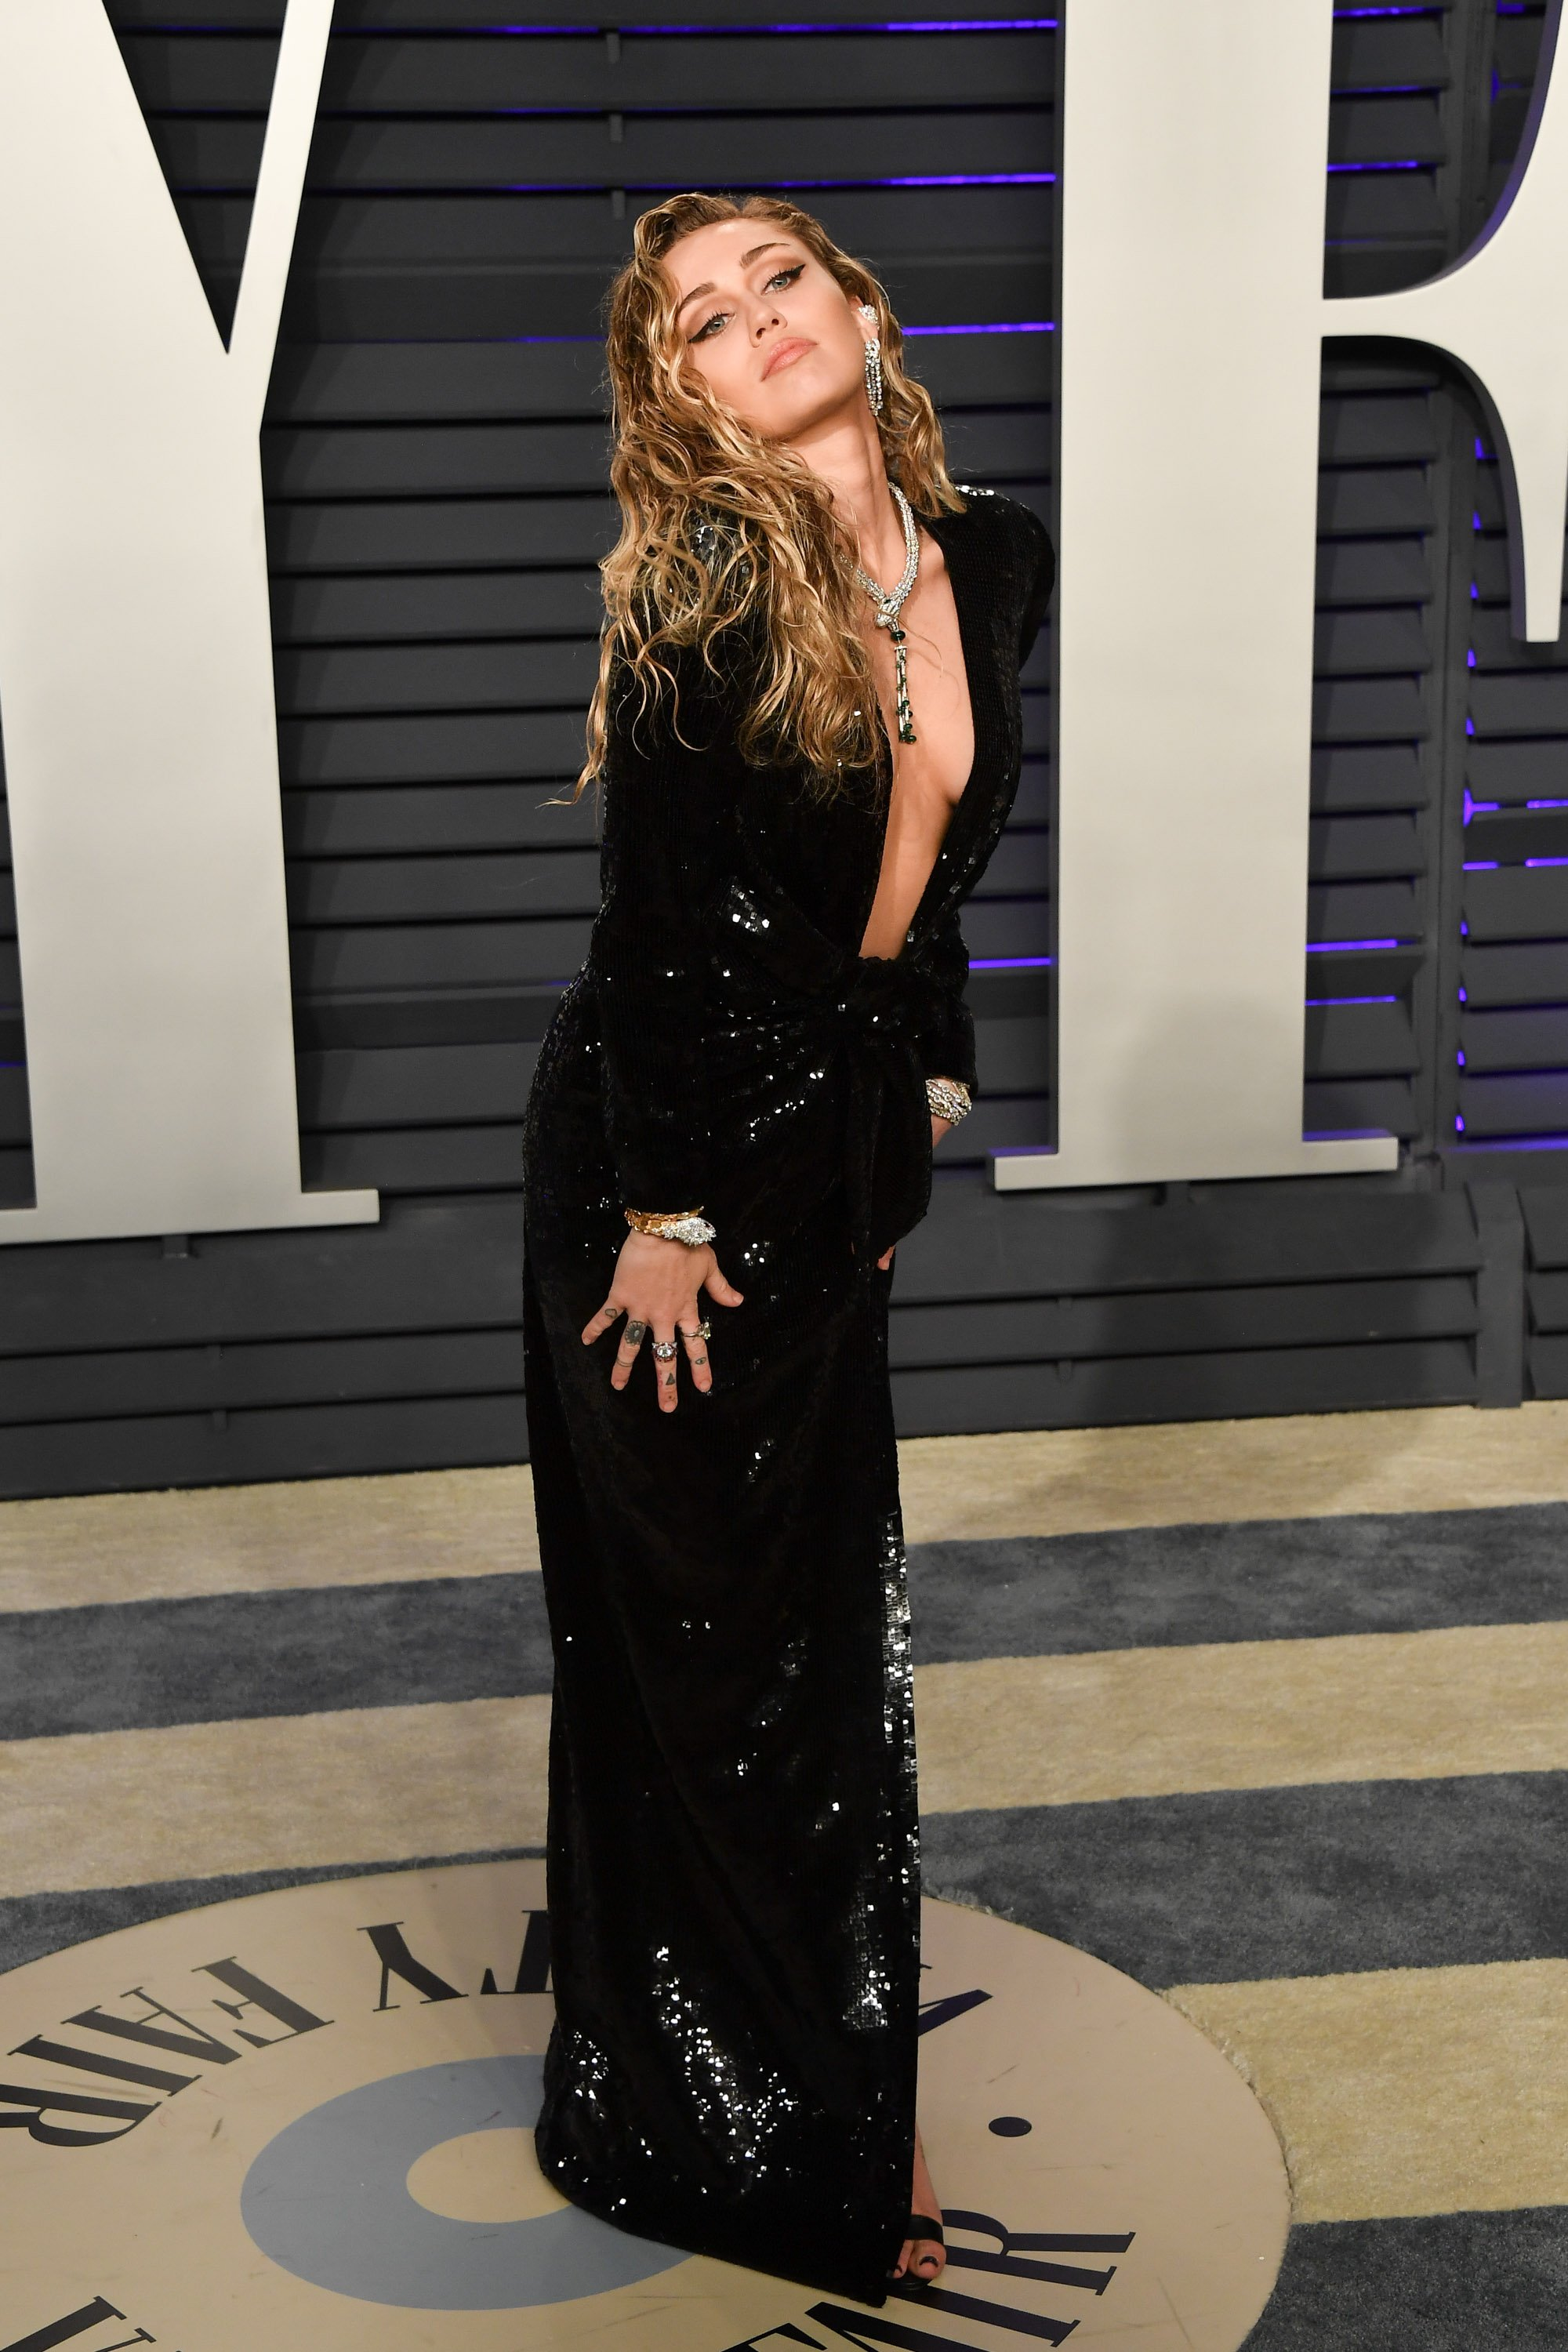 Miley Cyrus attending the Vanity Fair Oscar Party in 2019. | Photo: Getty Images